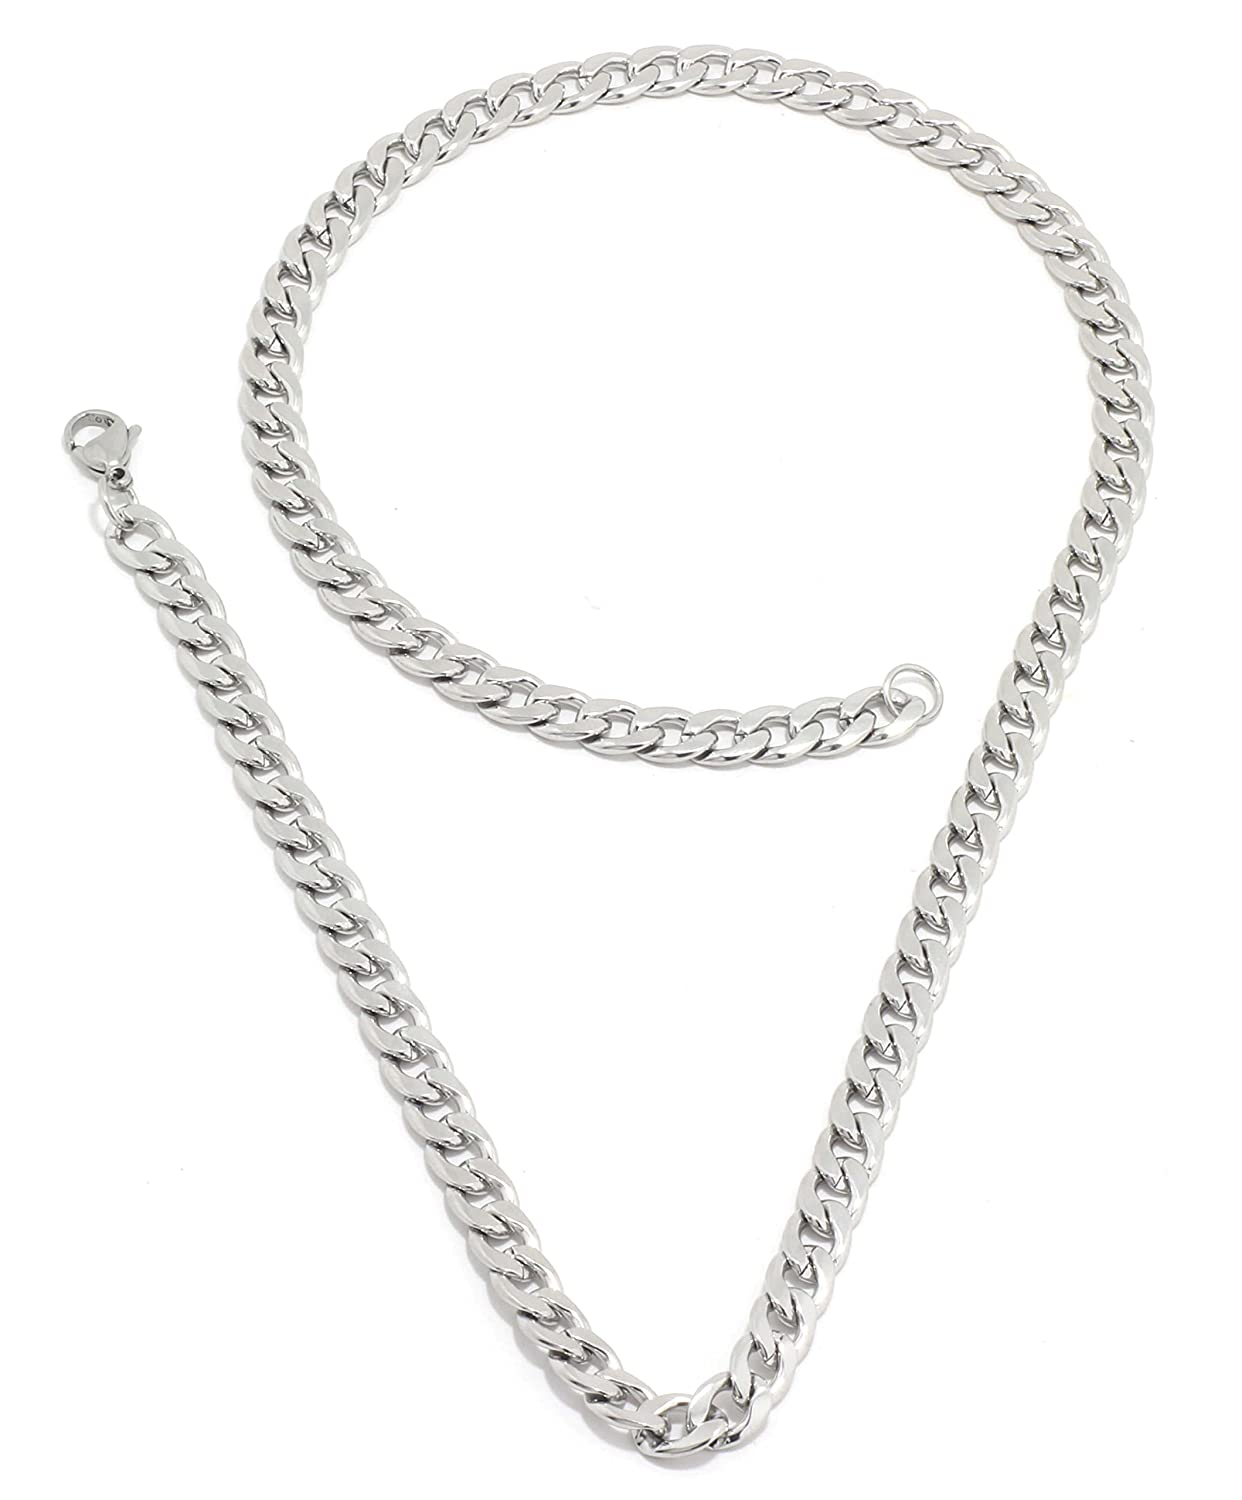 Saizen CH025 Stainless Steel Silver colour Chain for Men and Boys.